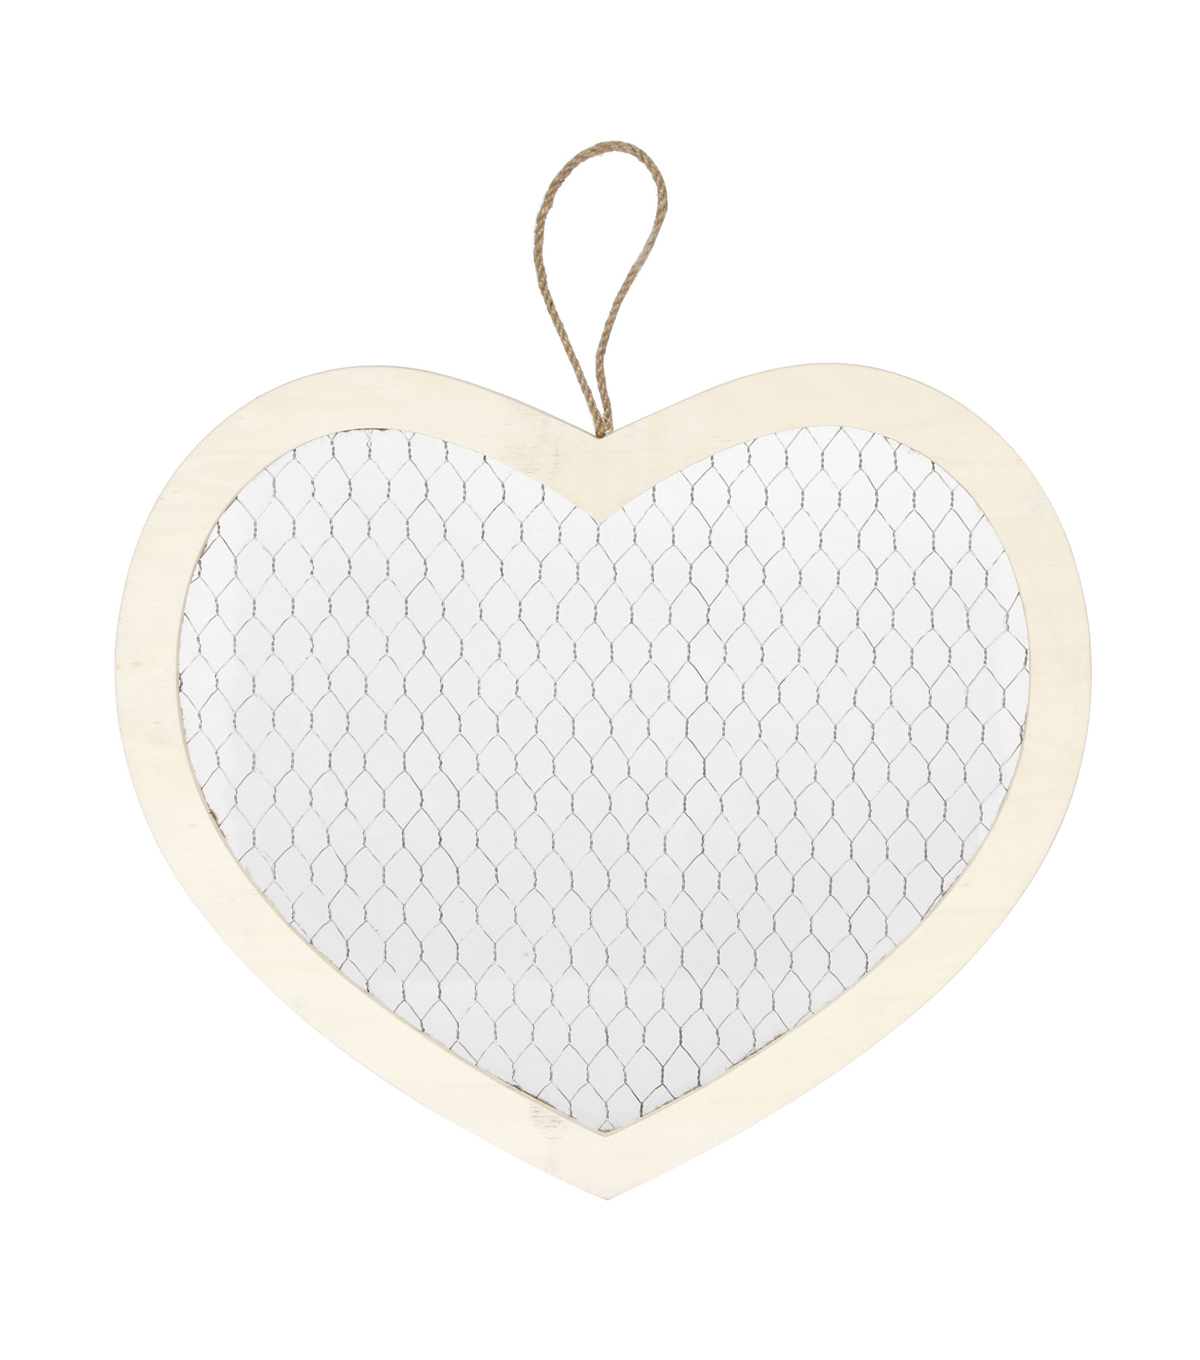 Darice® Unfinished Wood Heart Frame with Chicken Wire